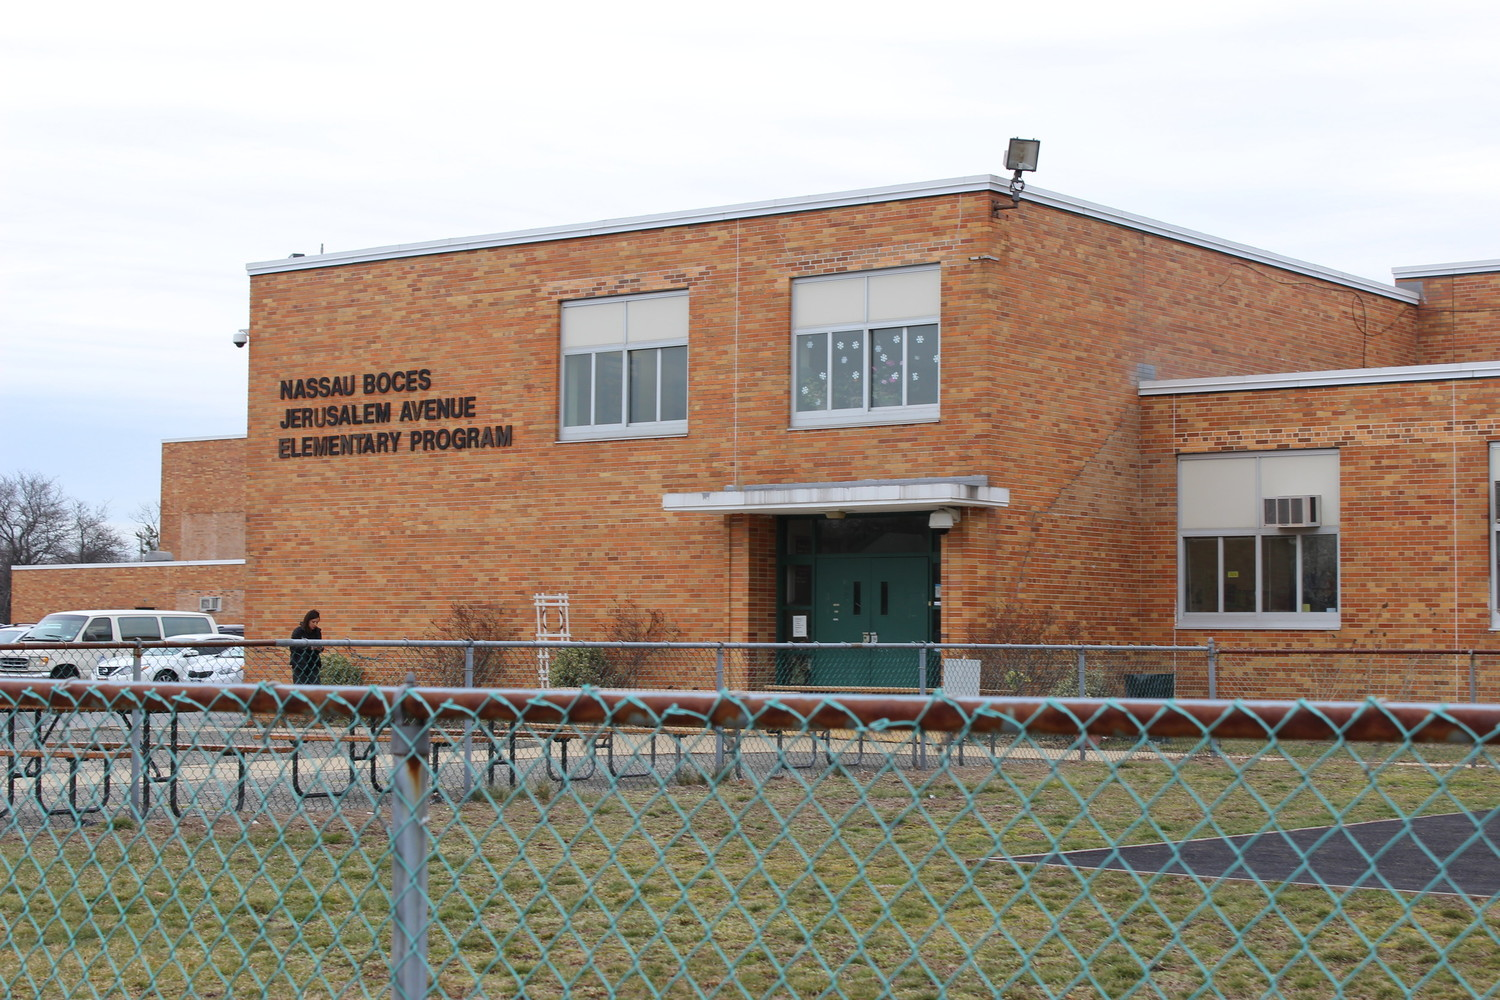 Voters will decide on Dec. 5 whether the Bellmore-Merrick Central District should sell the Jerusalem Avenue school building to Nassau BOCES for $12 million. The sale would be in the district's best interests, according to Superintendent John DeTomasso.